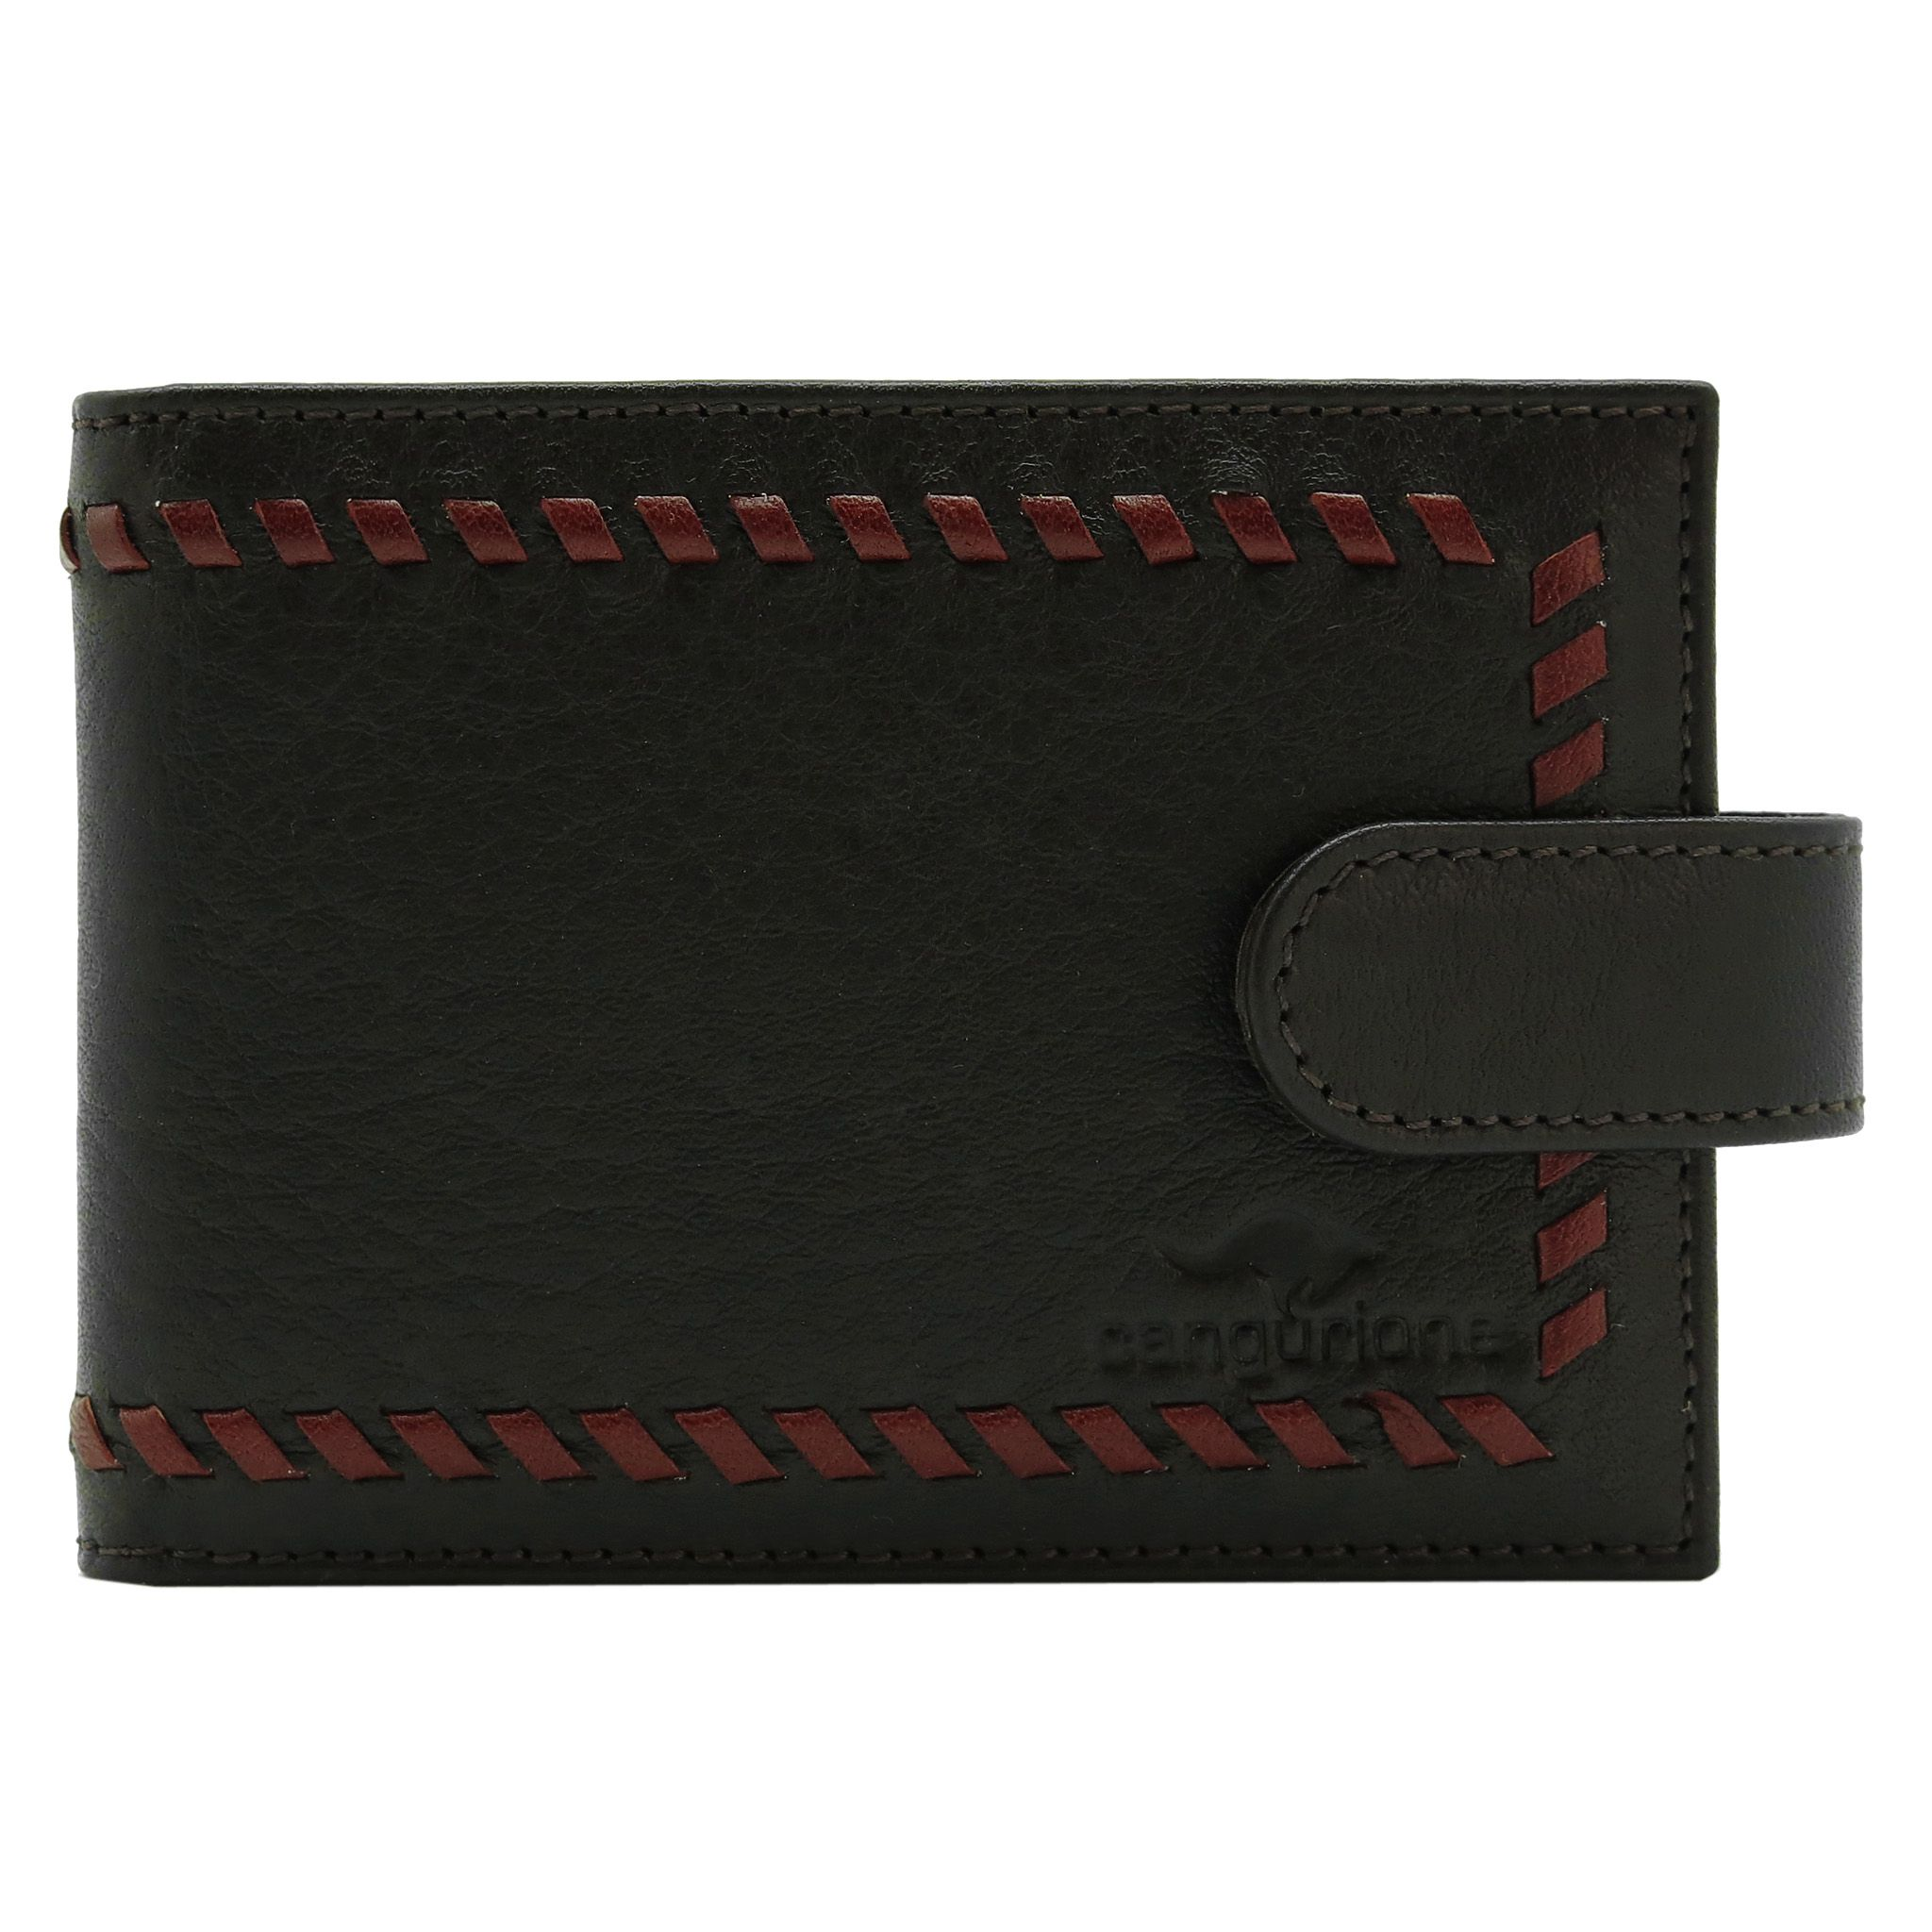 handmade leather accessories brown cardholder red